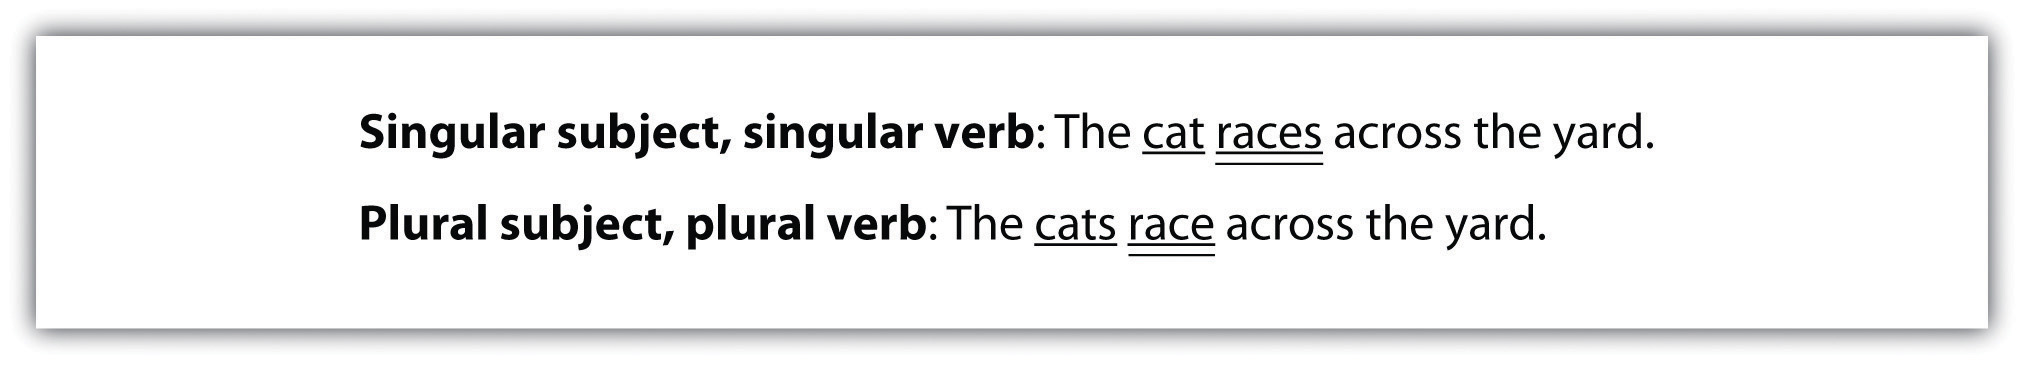 Printable Worksheets third person singular worksheets : 2.2 Subject-Verb Agreement | Successful Writing